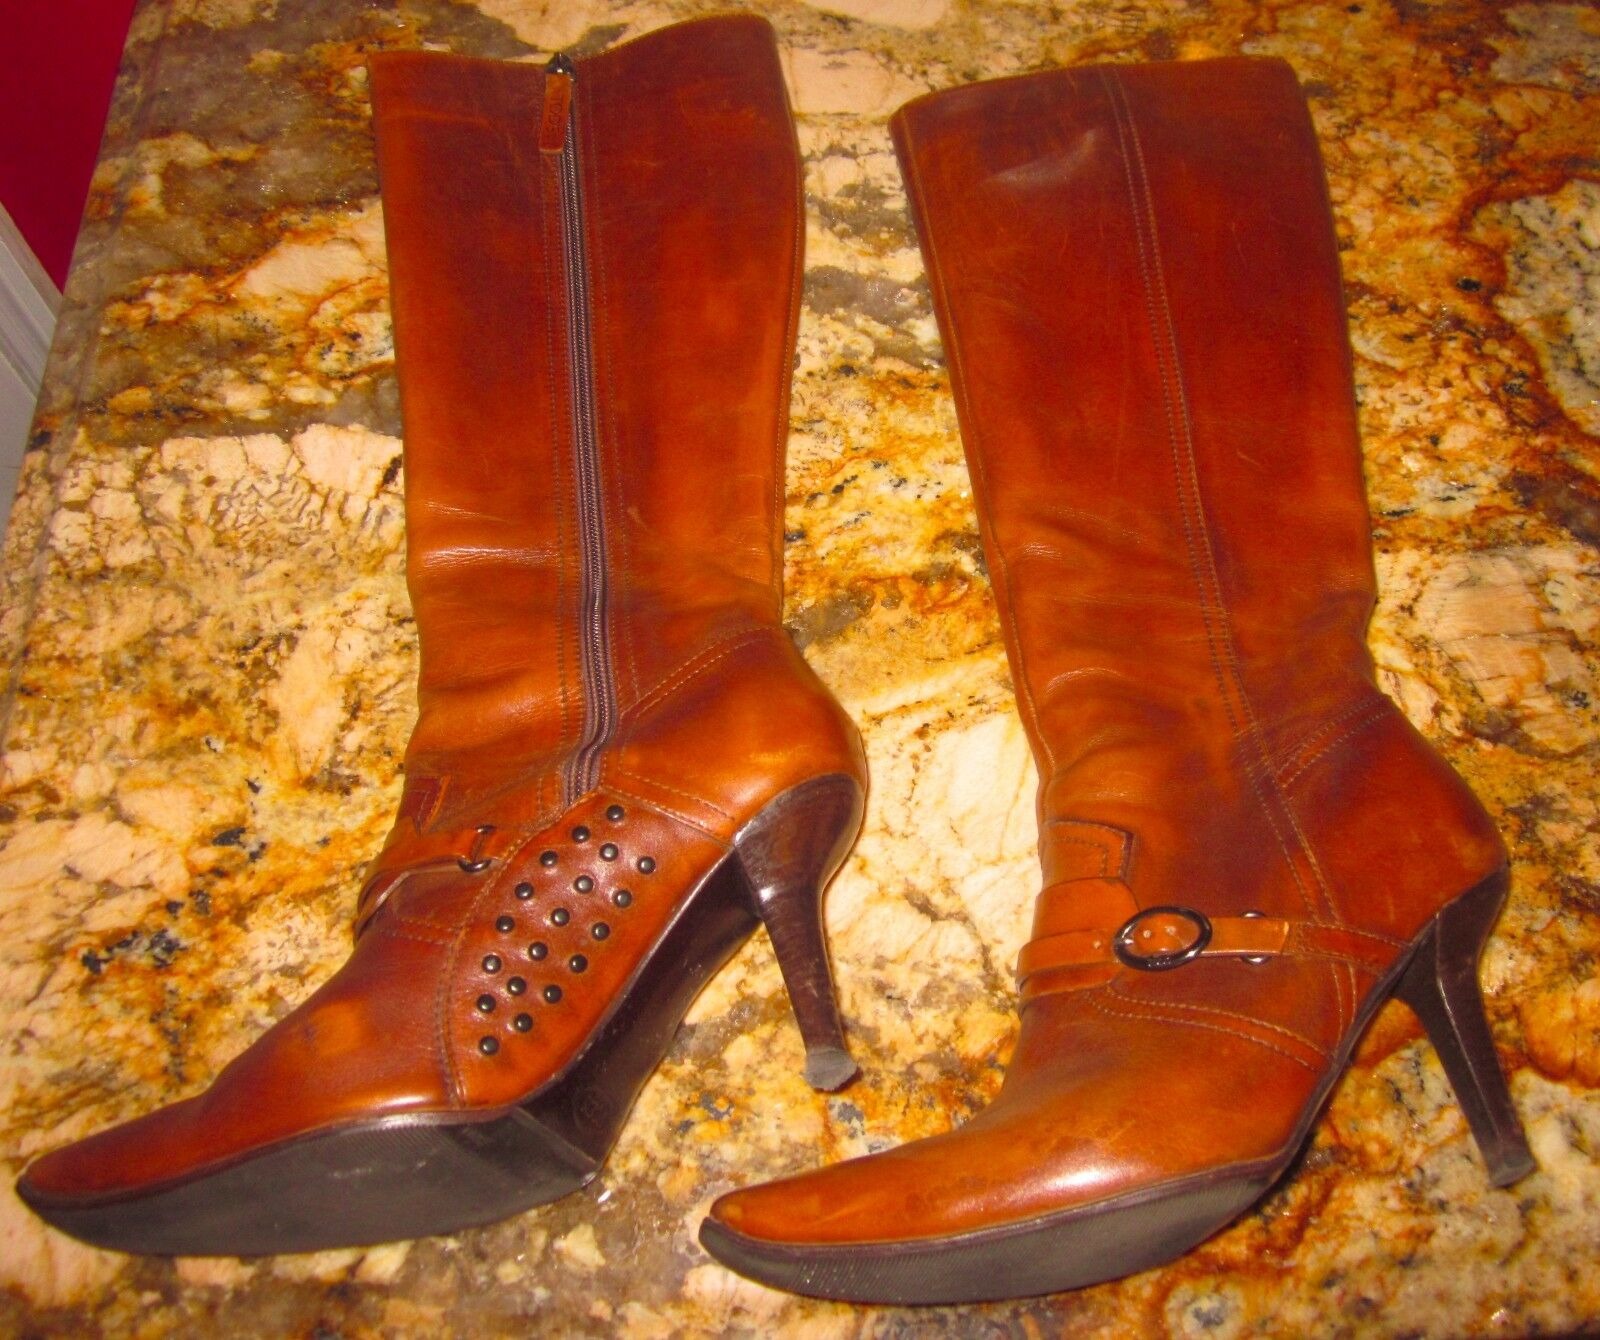 AMAZING TODS TOD'S marron Saddle Leather High High High Heel GORGEOUS  bottes 37.5 7 7.5 51d5fc